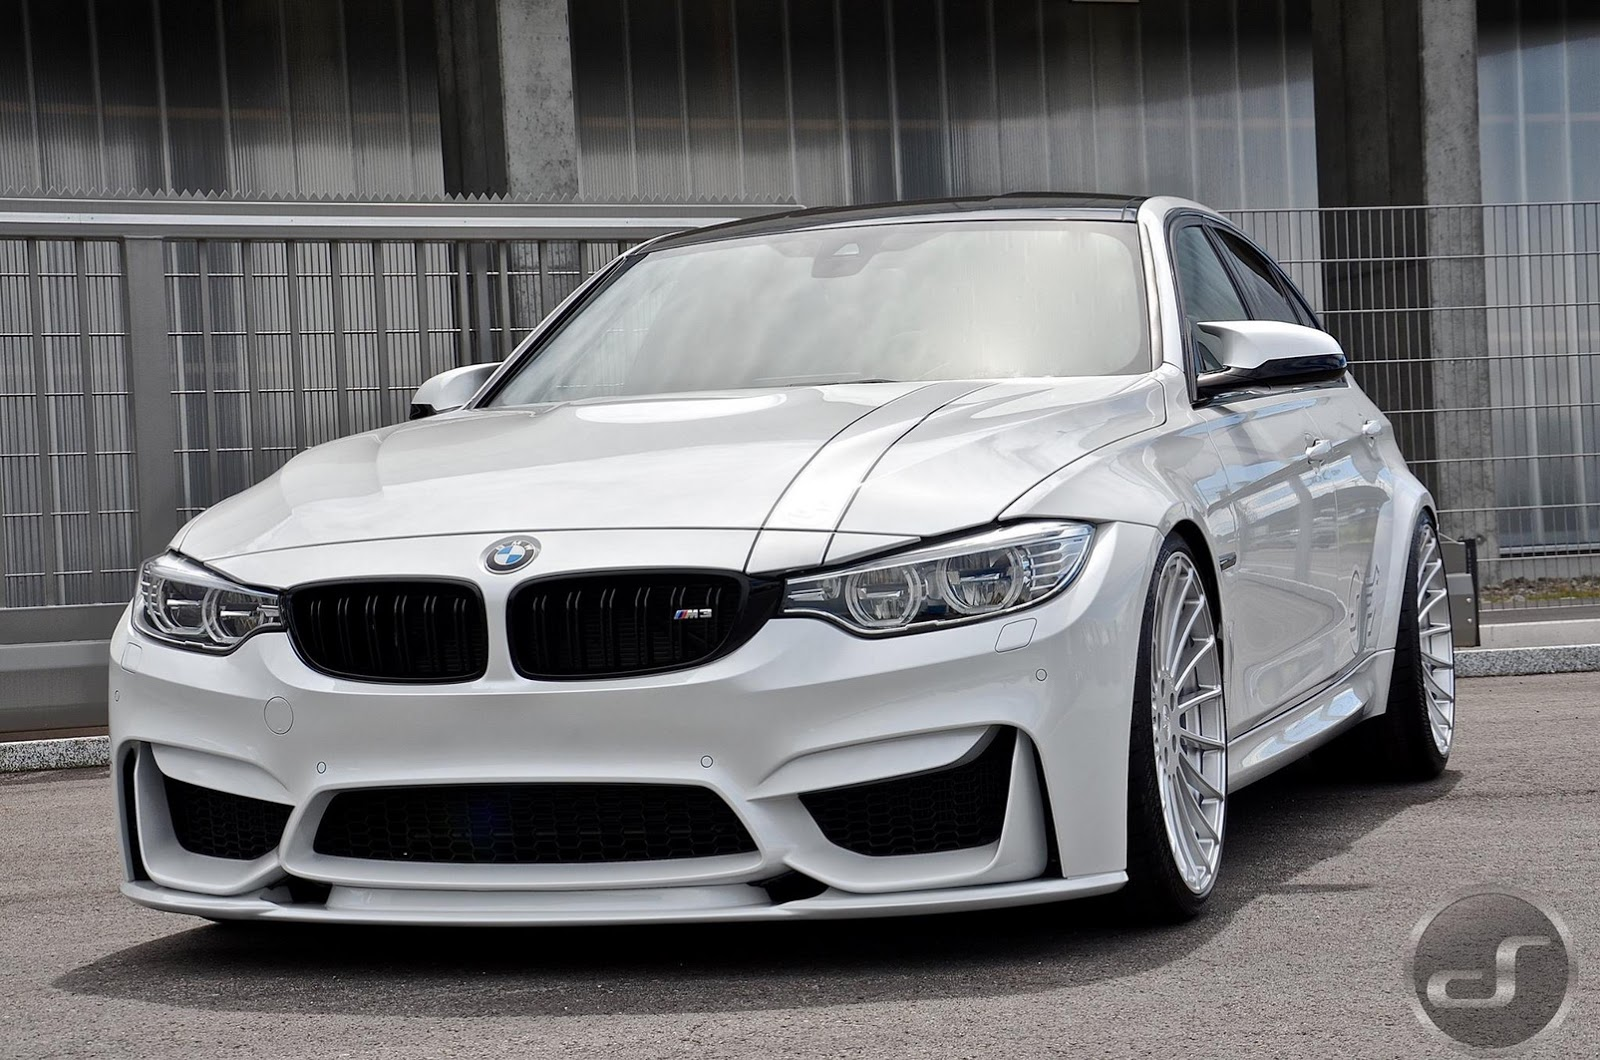 f80 bmw m4 by ds automobile hamann 29 images bmw car tuning. Black Bedroom Furniture Sets. Home Design Ideas